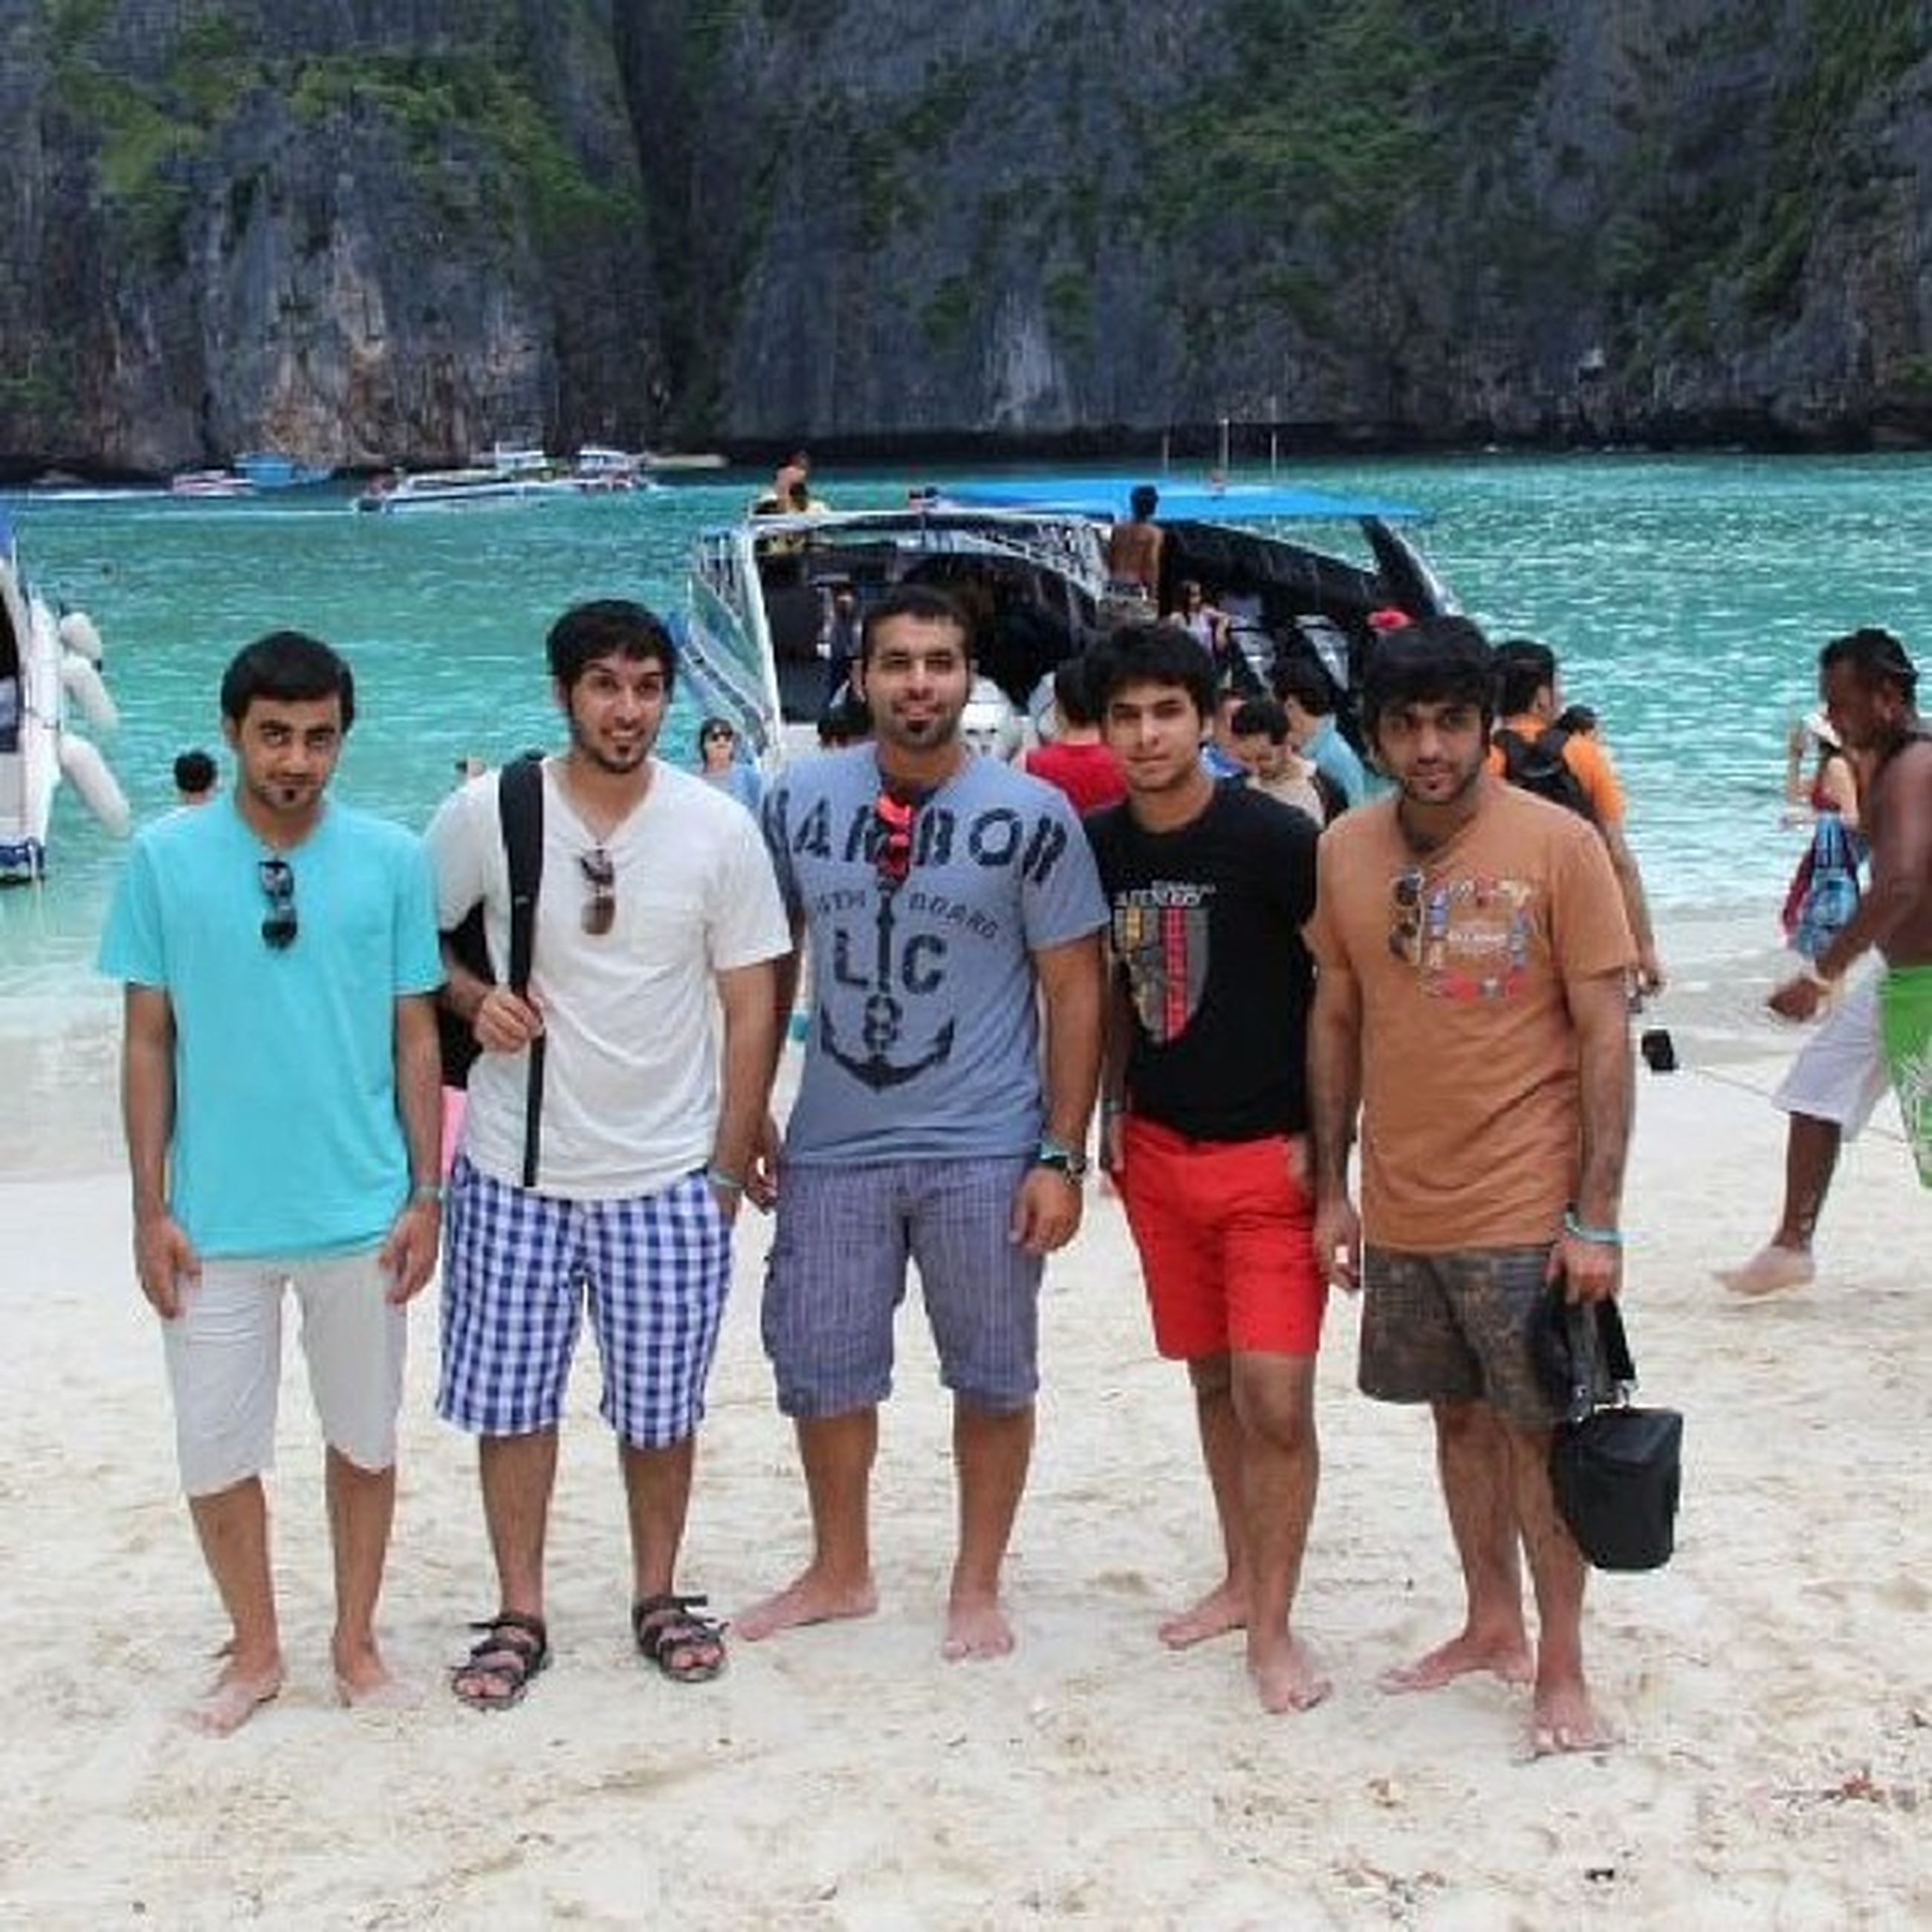 lifestyles, togetherness, leisure activity, water, bonding, friendship, vacations, casual clothing, love, enjoyment, men, large group of people, standing, person, beach, full length, young men, sea